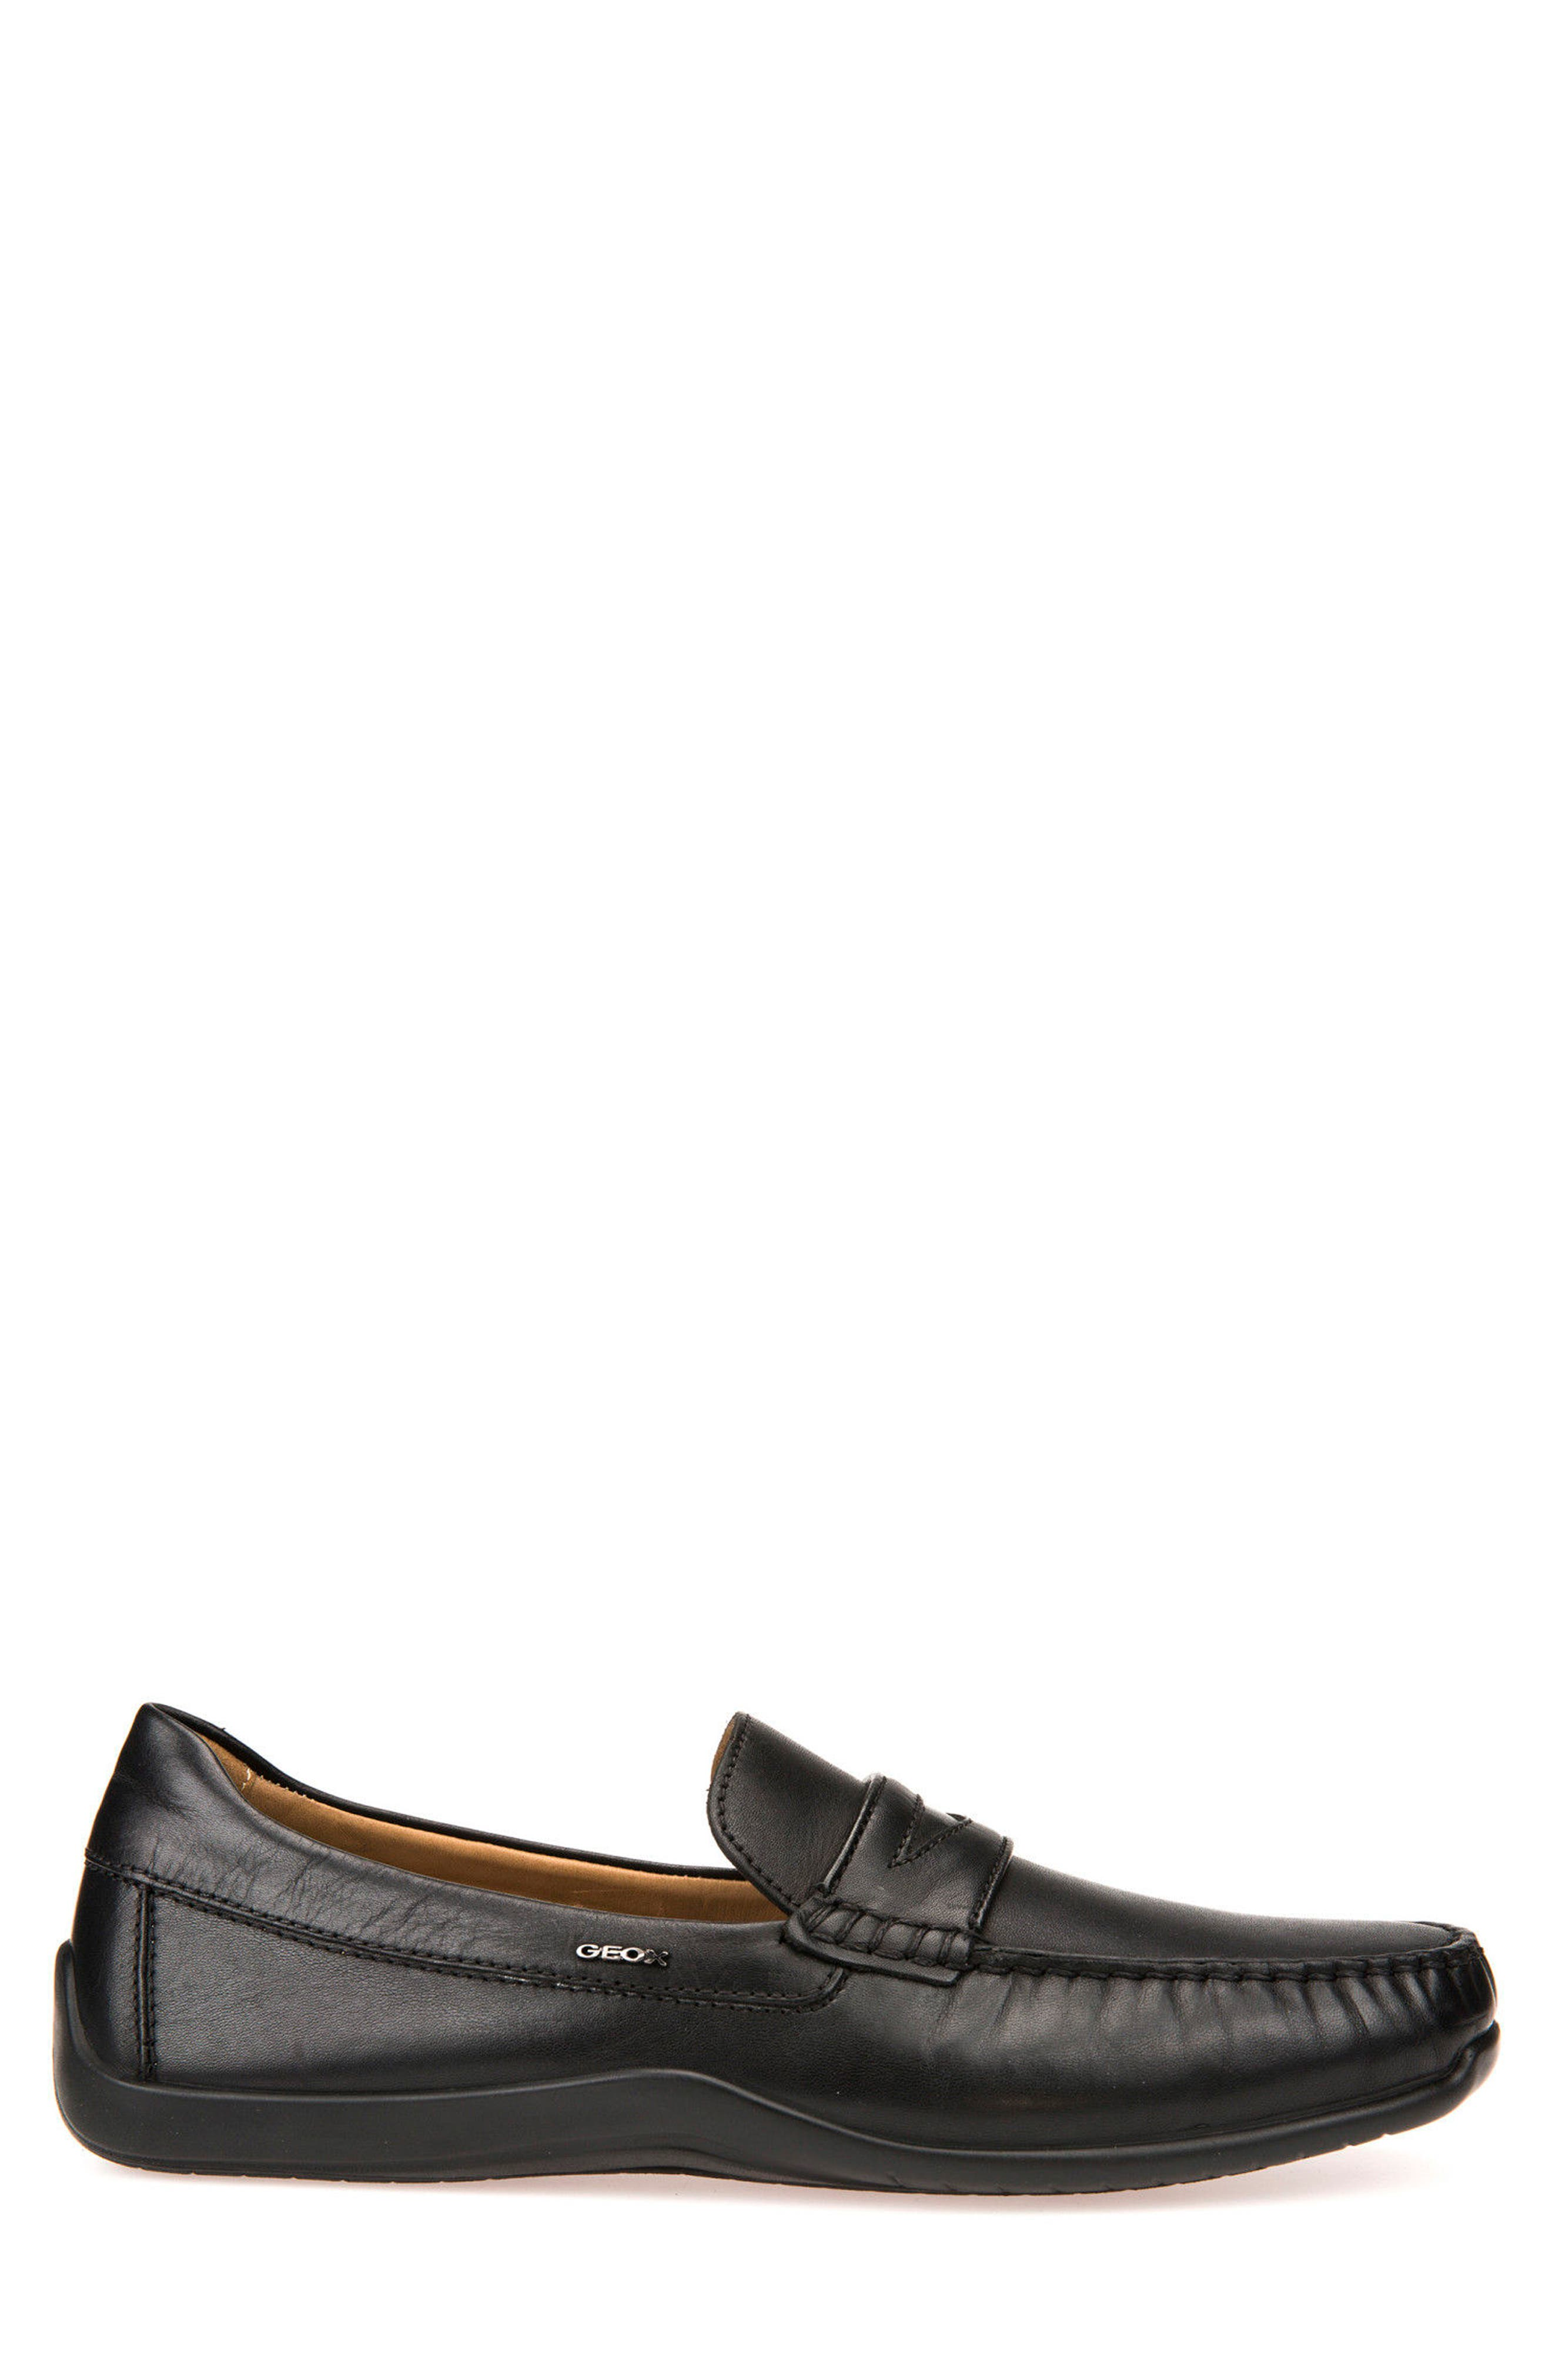 Alternate Image 3  - Geox Xense Penny Loafer (Men)